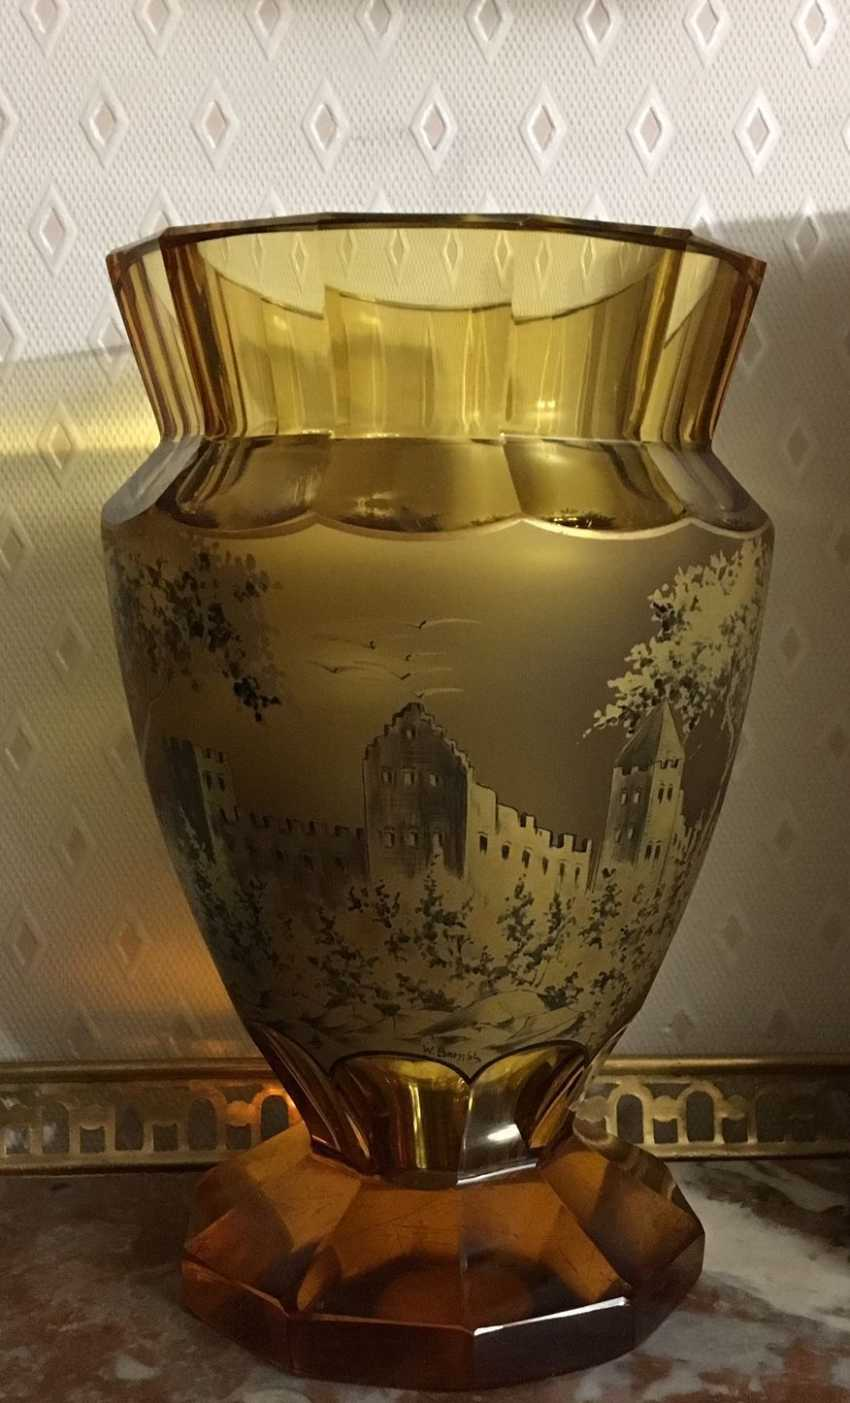 Vase glass. Europe, early XX century. - photo 5